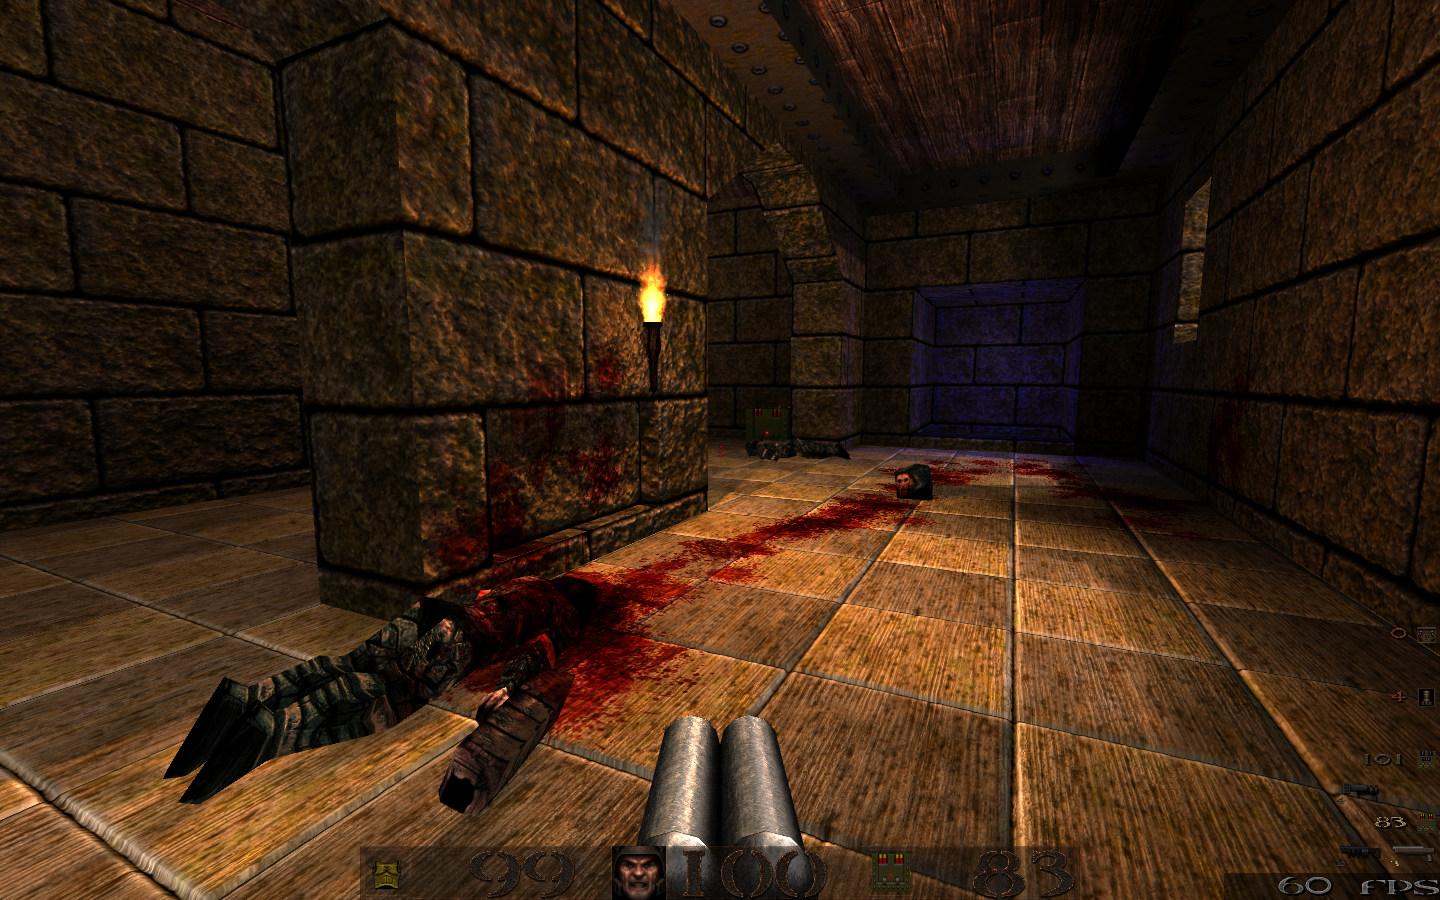 Live Wallpaper Hd 3d For Pc Castle Of The Damned Image Quake Hd Pack Mod For Quake